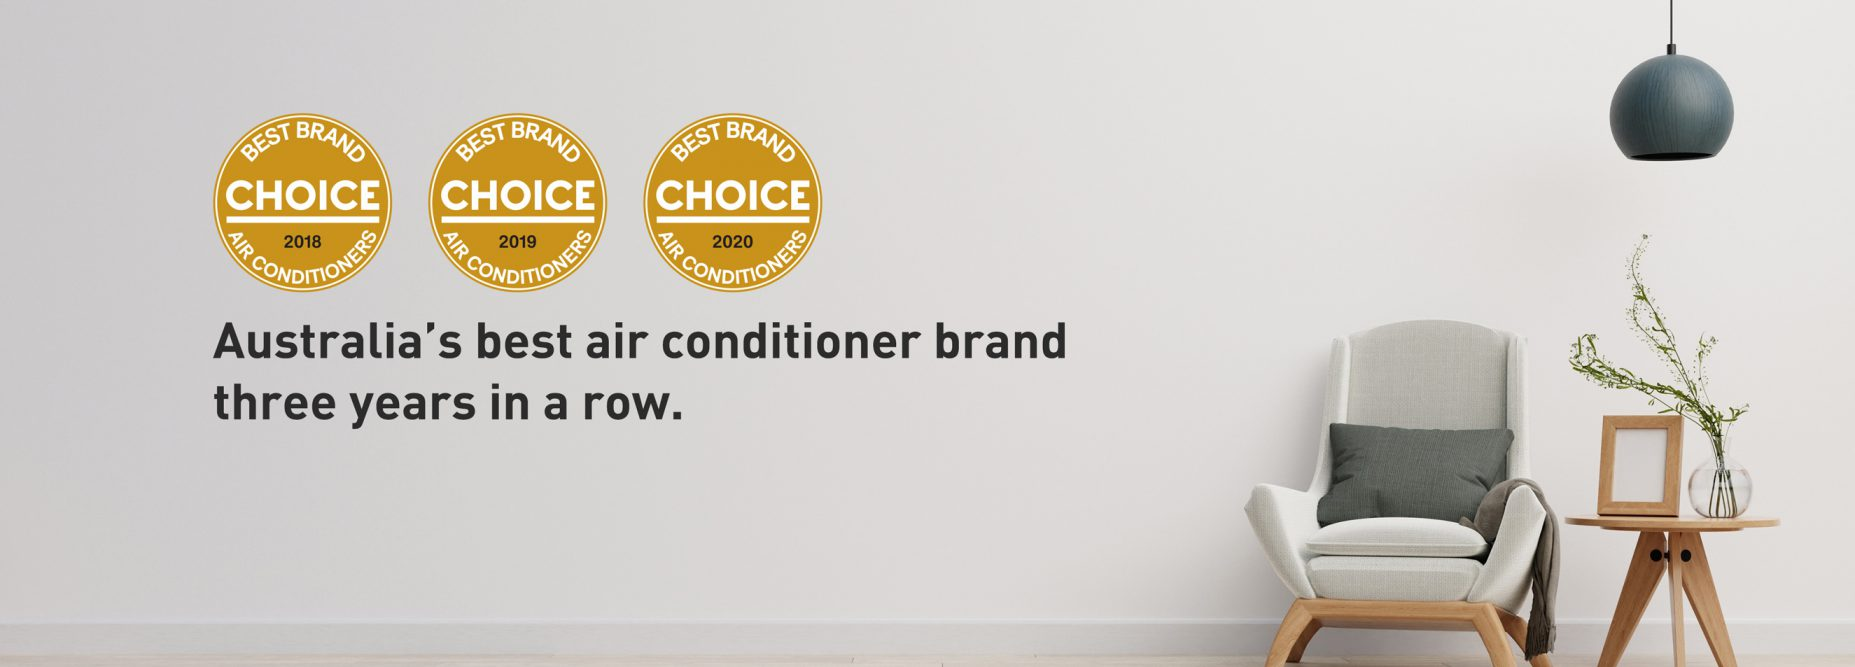 CHOICE best brand of air conditioner 2020 banner image with all three logos